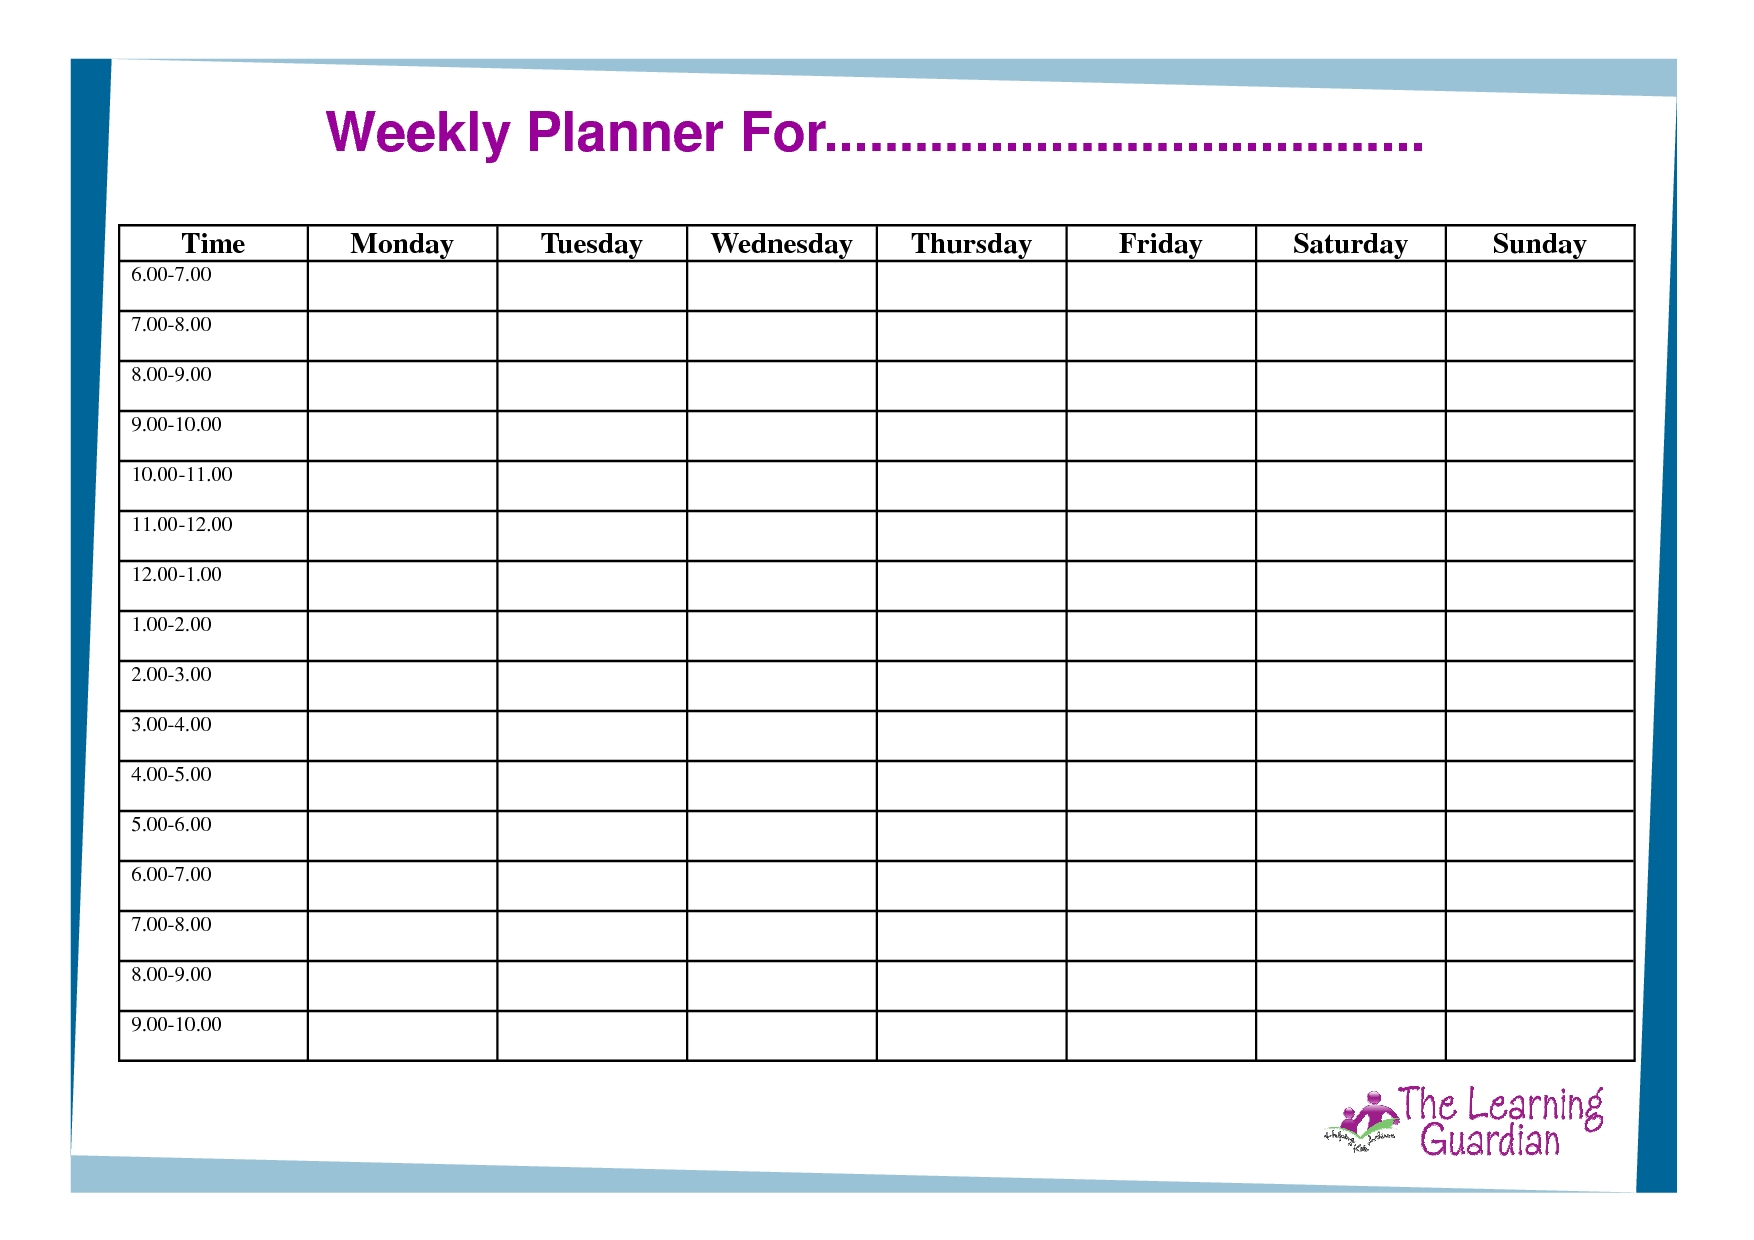 Schedule Template Blank Calendar With Times Daily Time Slots Day pertaining to Printable Time Of Day Calendar